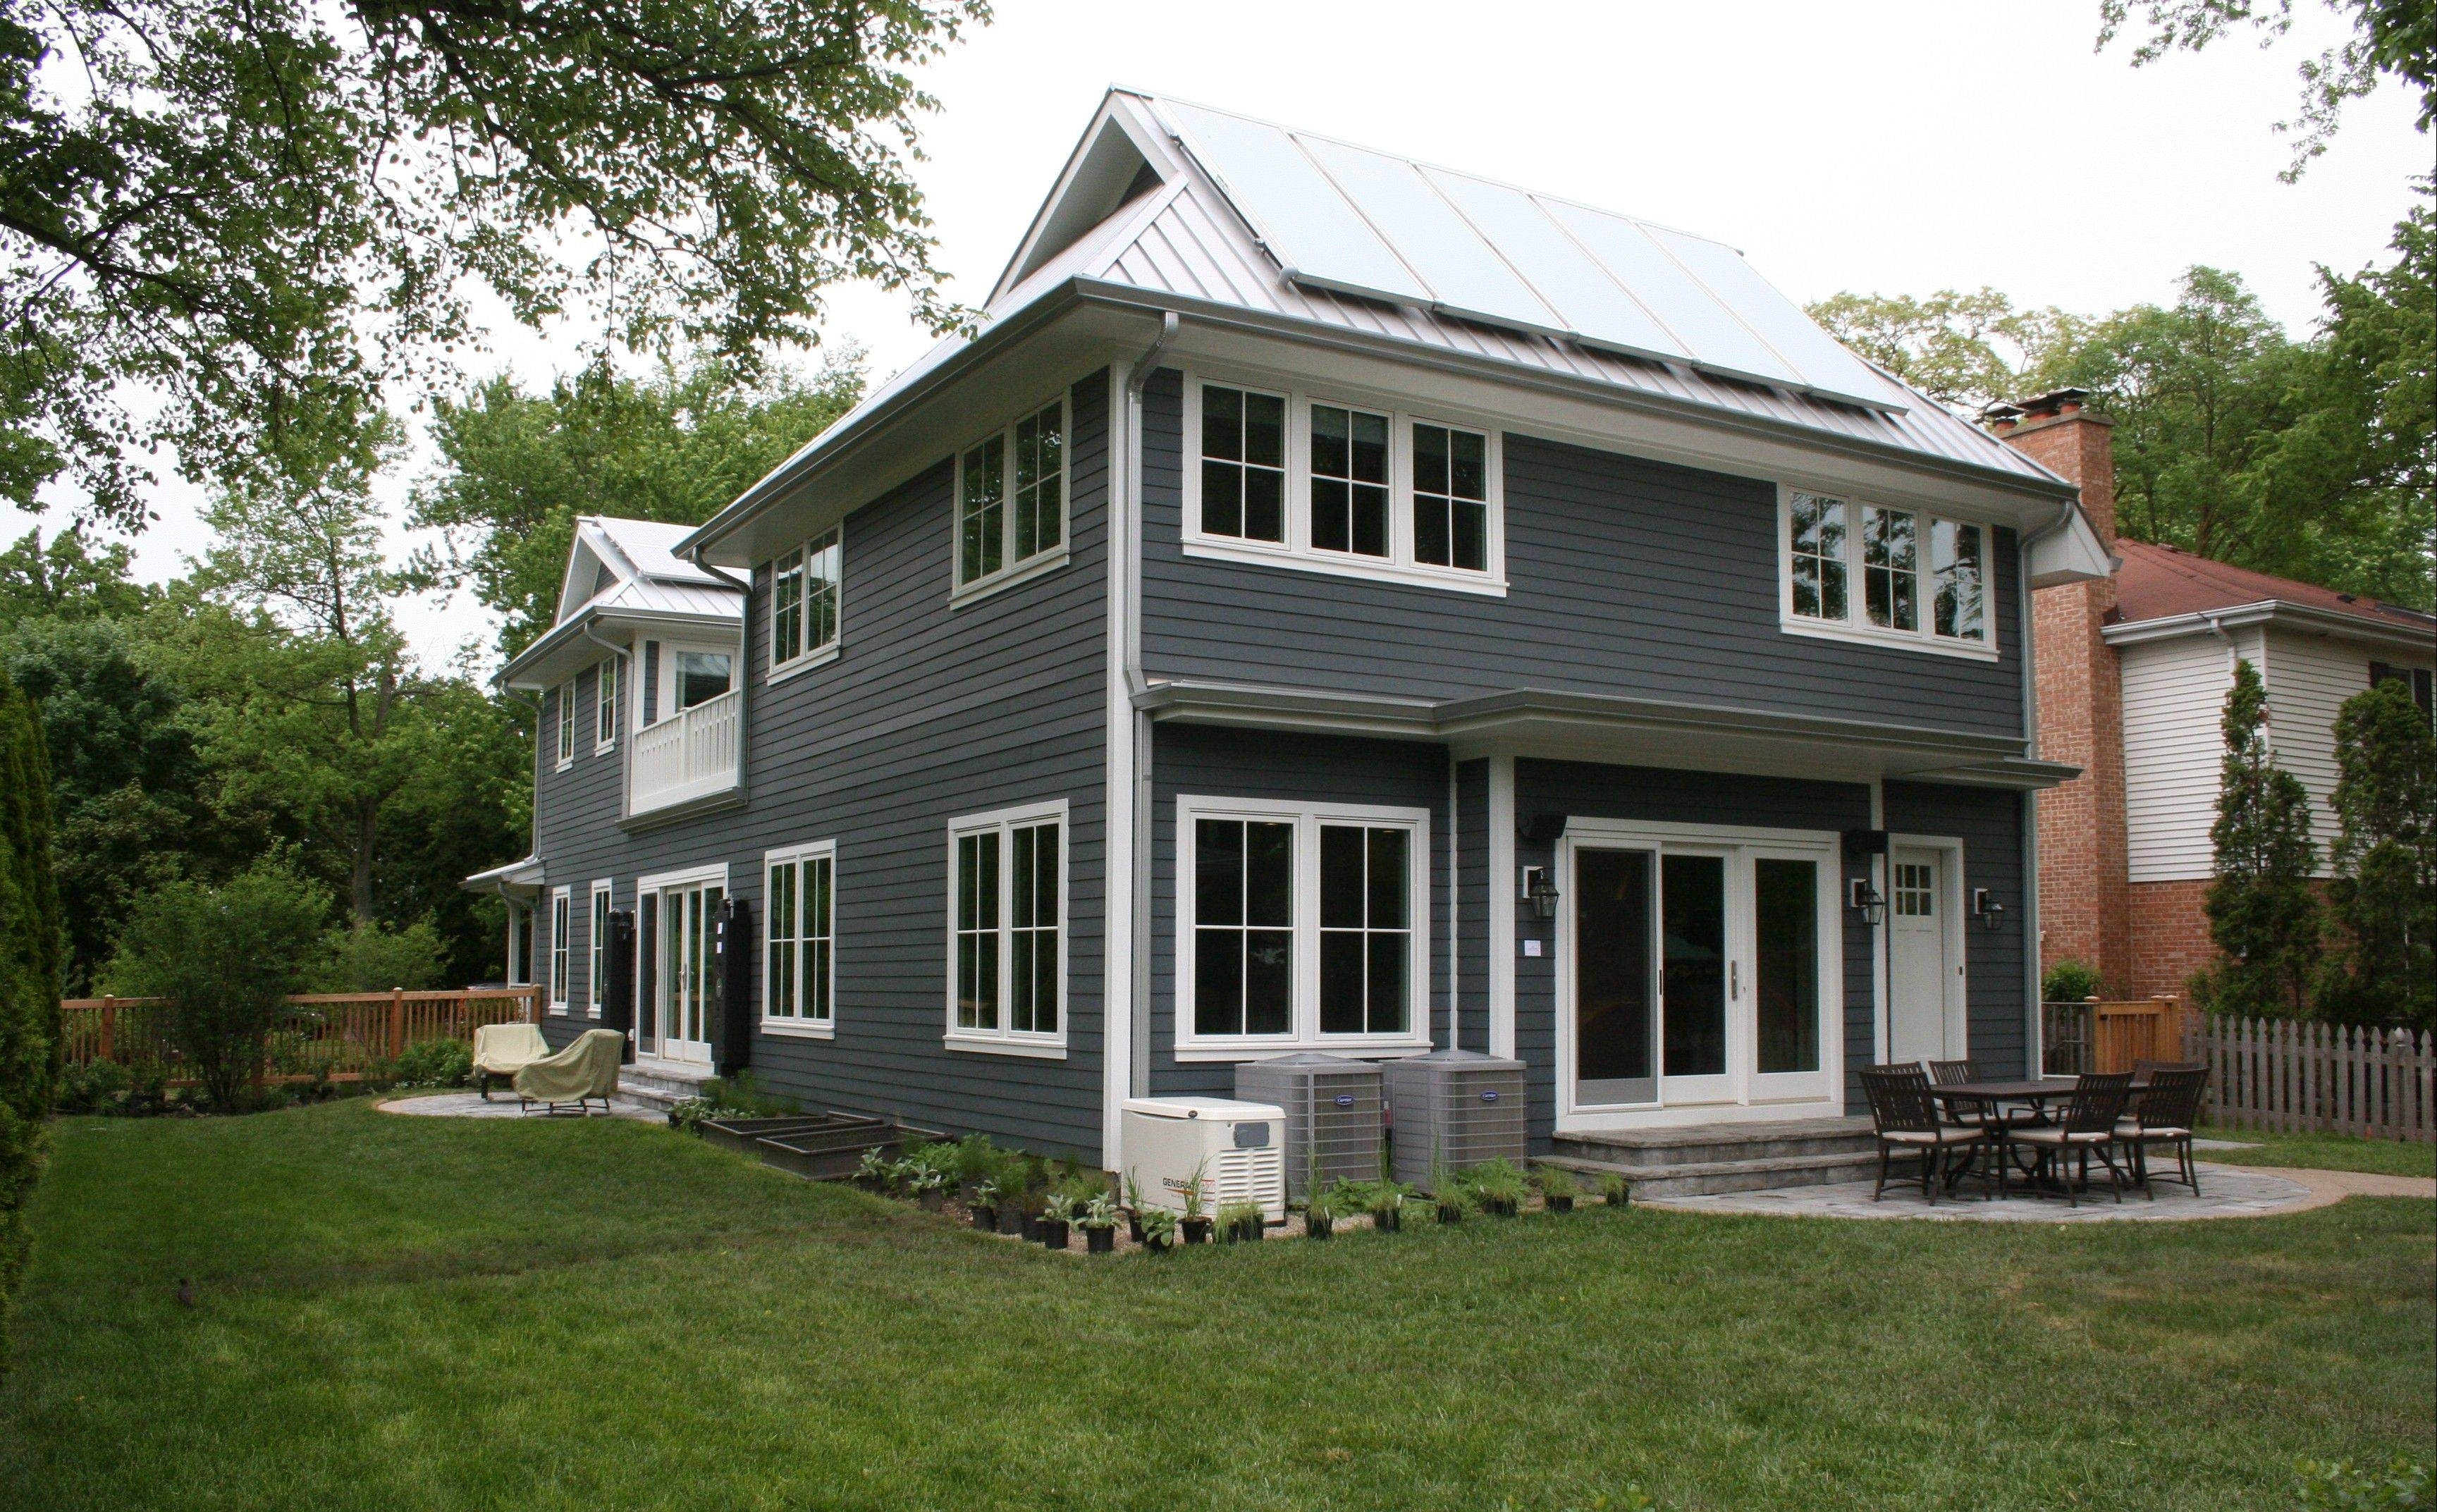 Scott Simpson Builders earned Platinum LEED certification for this energy-efficient farmhouse in Glencoe. Solar energy use is incorporated into it's traditional architectural design.